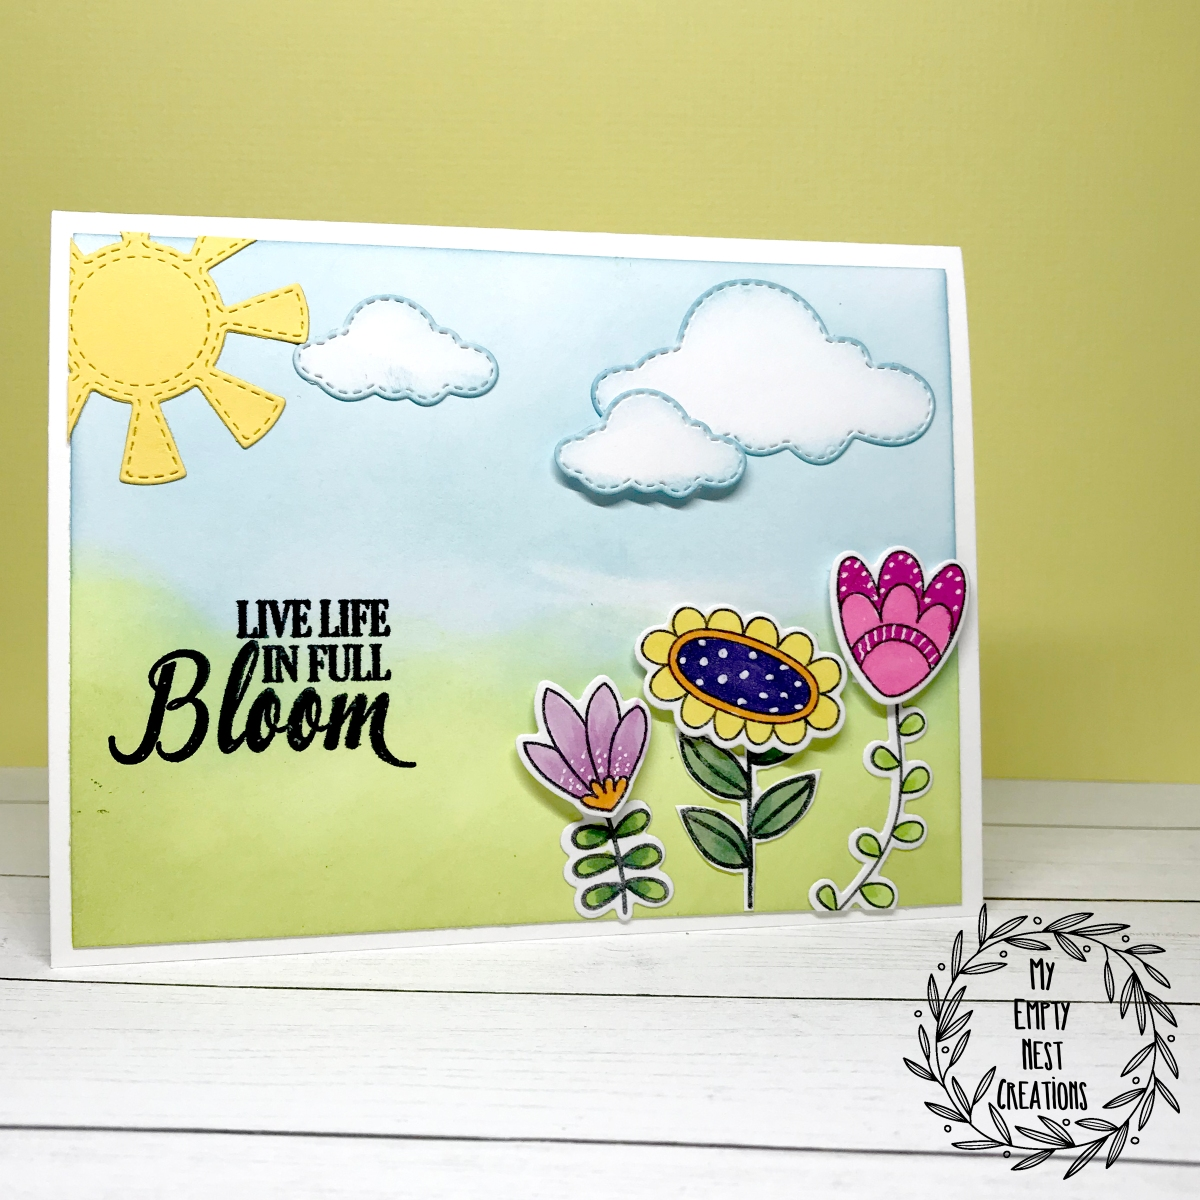 My Empty Nest Creations Simple Floral Scene Card